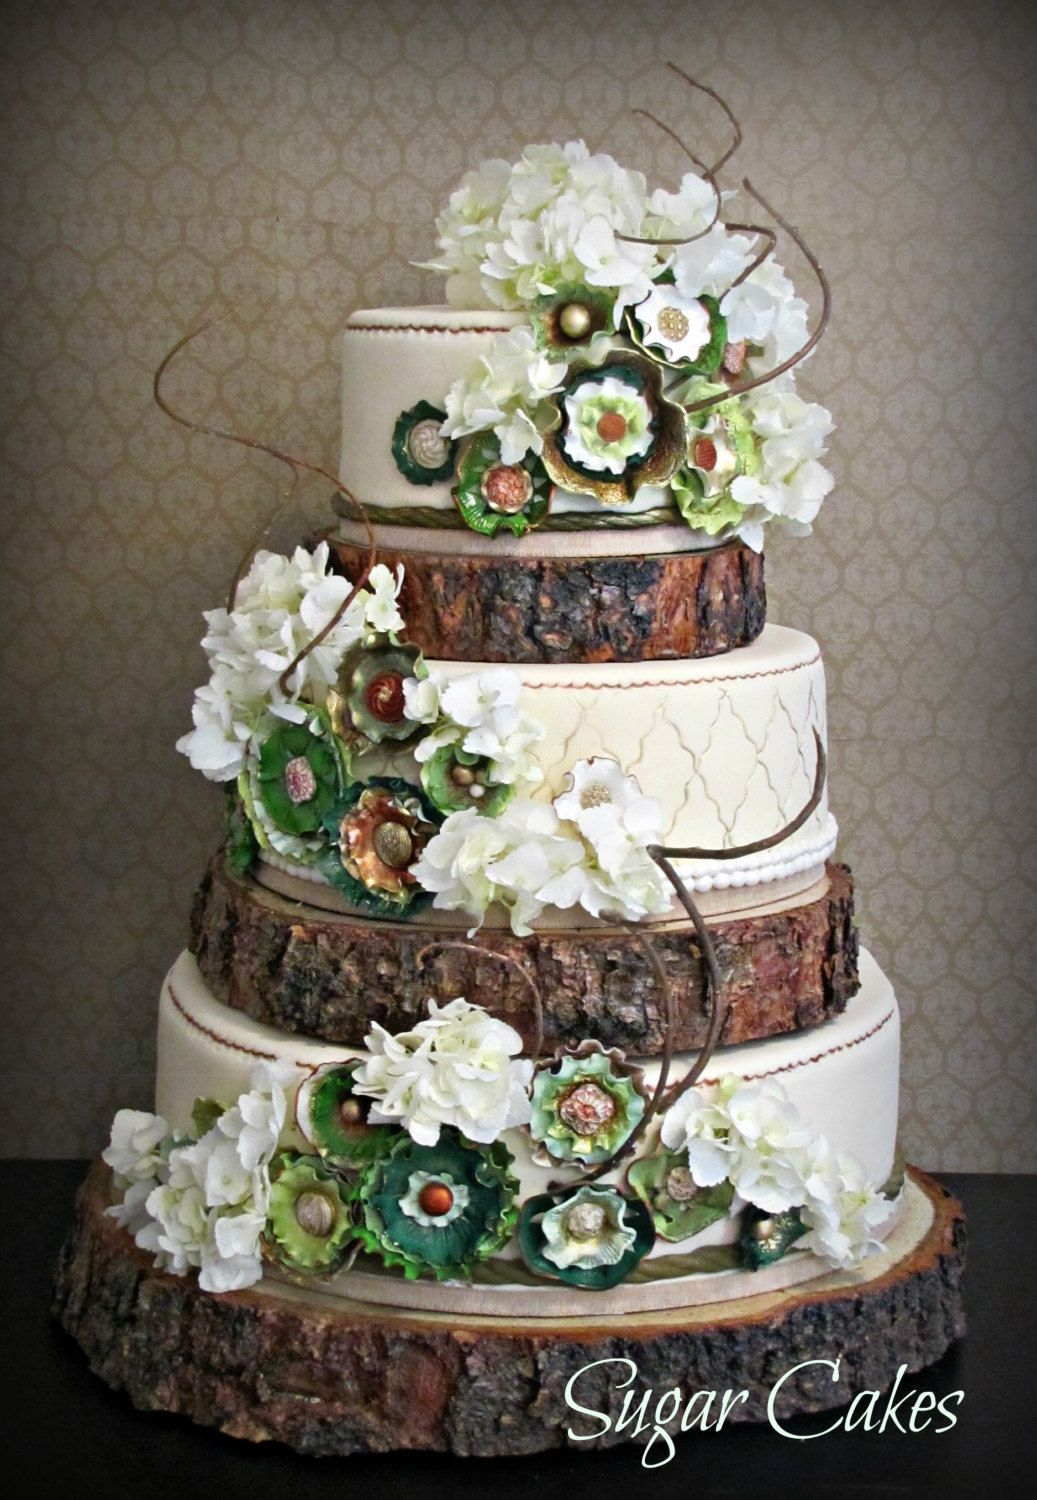 Torta Matrimonio Country Chic : Torta stile country chic ricevimento di nozze forum